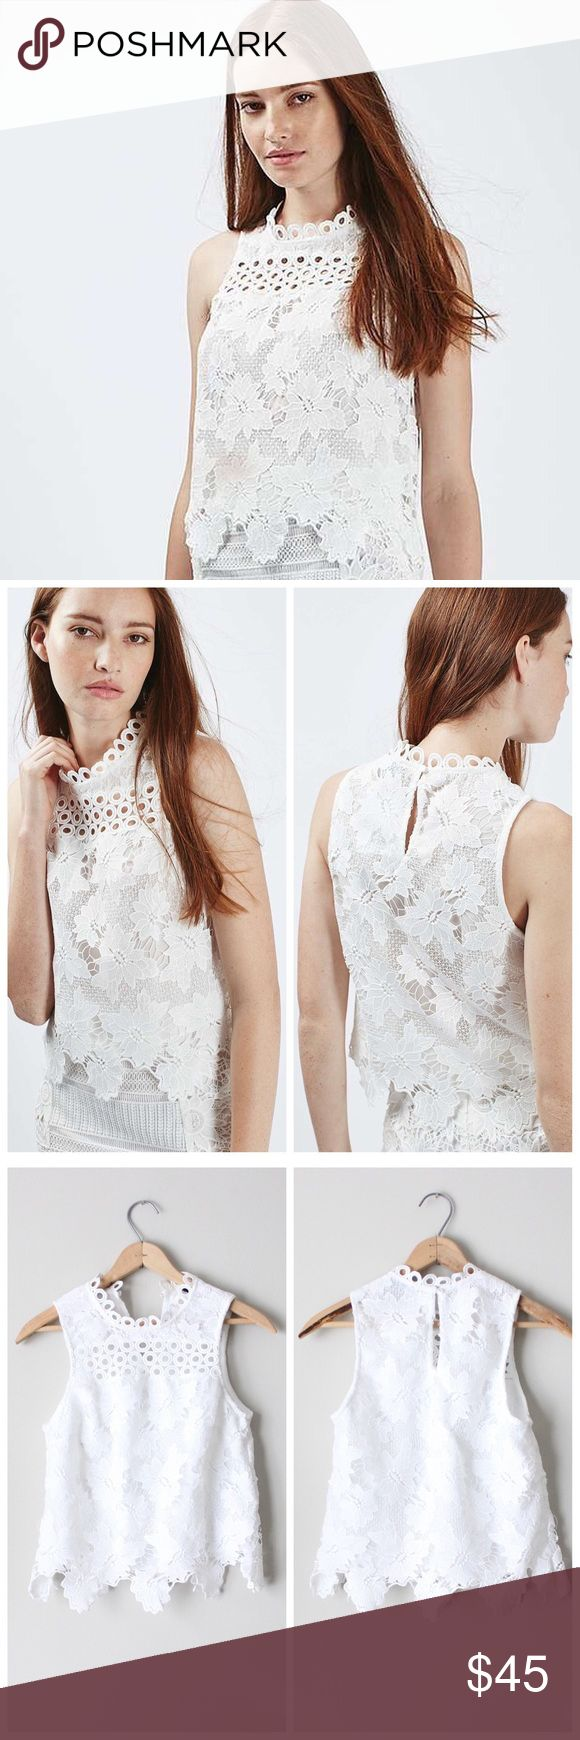 Panel Sleeveless Lace Shell Top Stunning white lace top. In excellent gently used condition. Topshop Tops